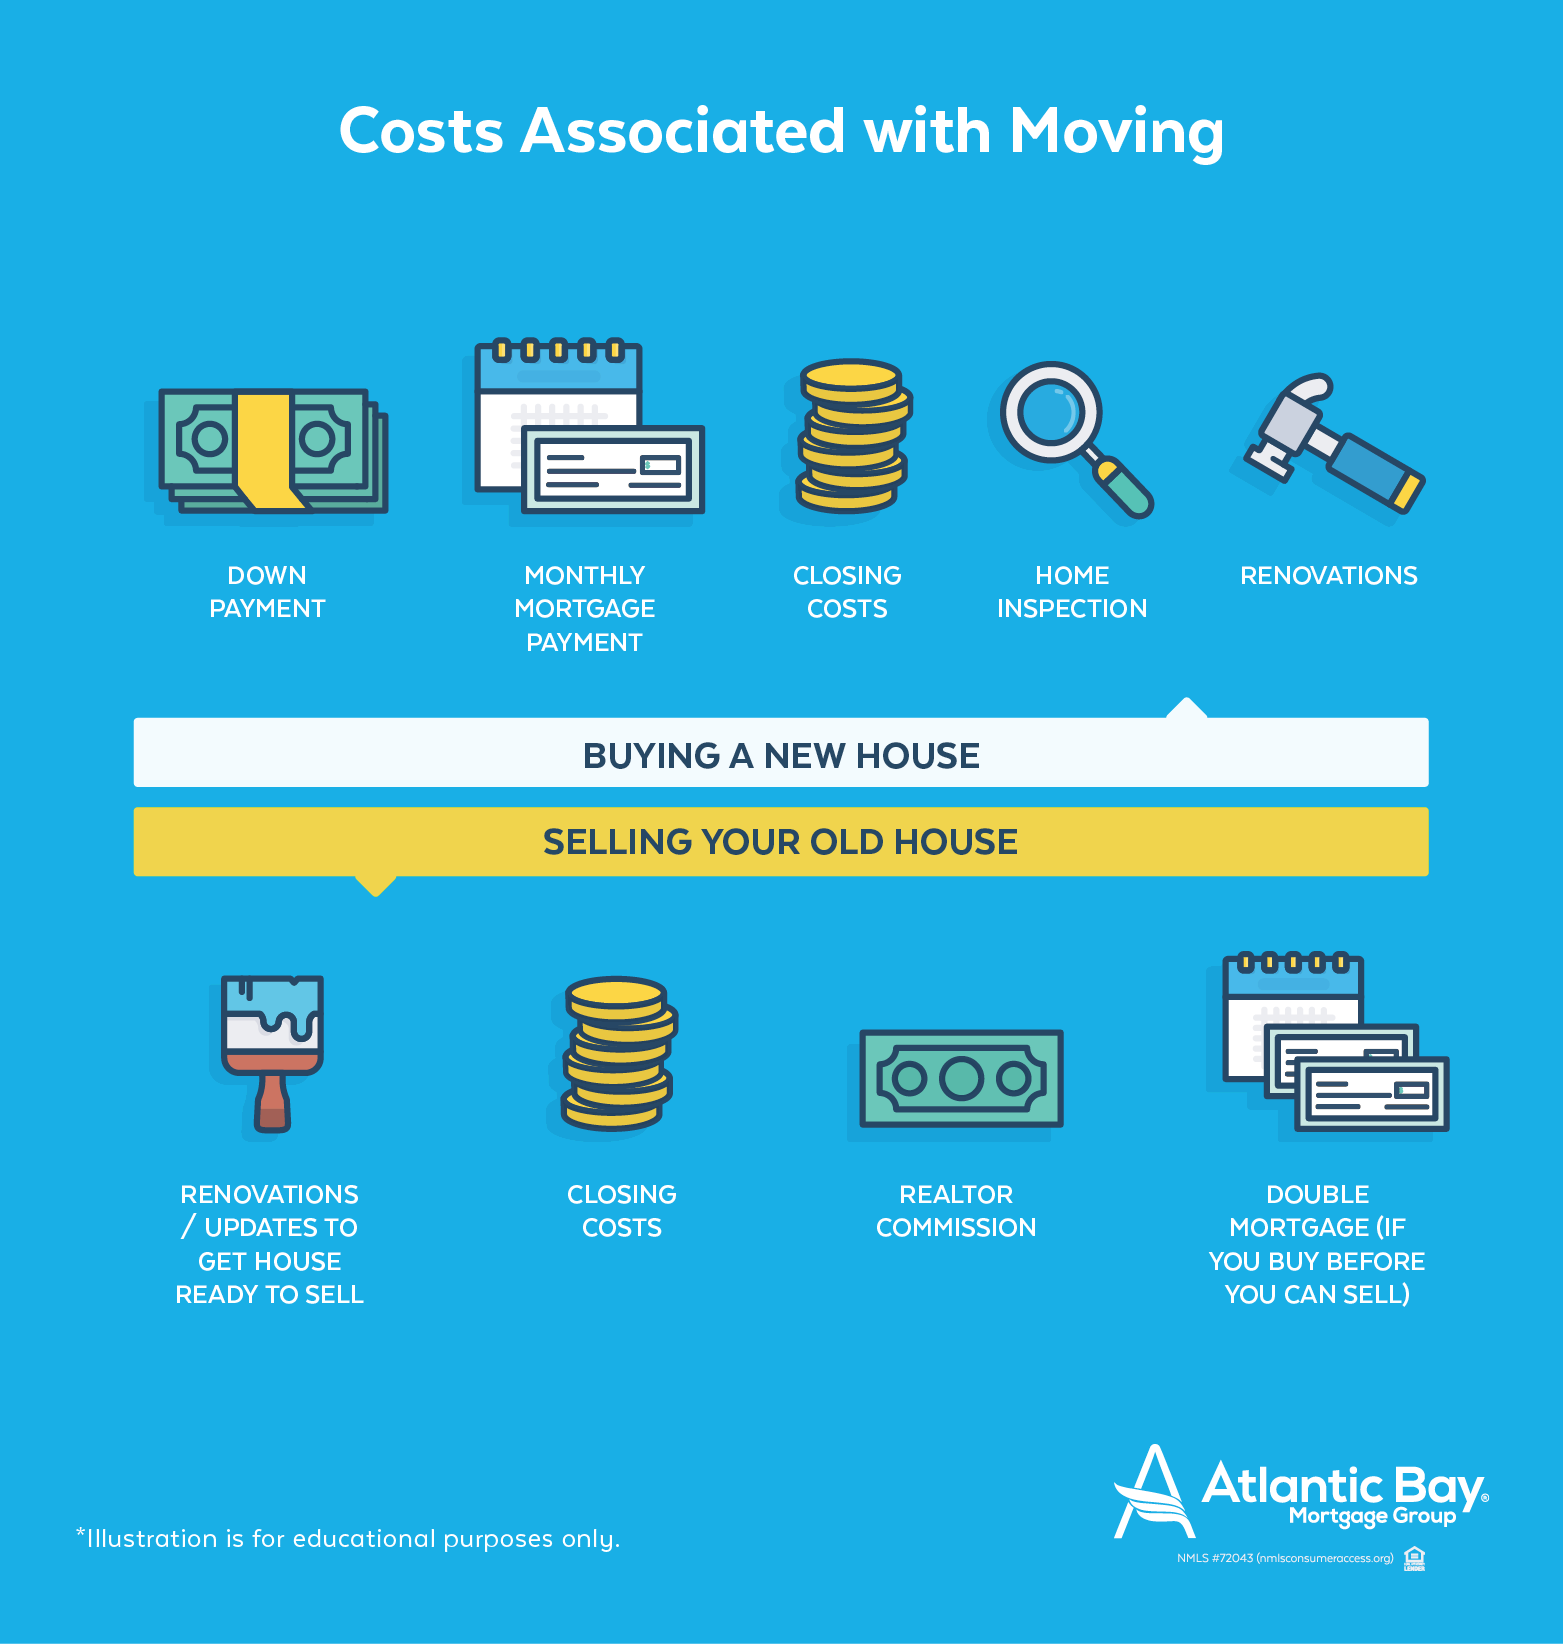 Costs Associated with Moving